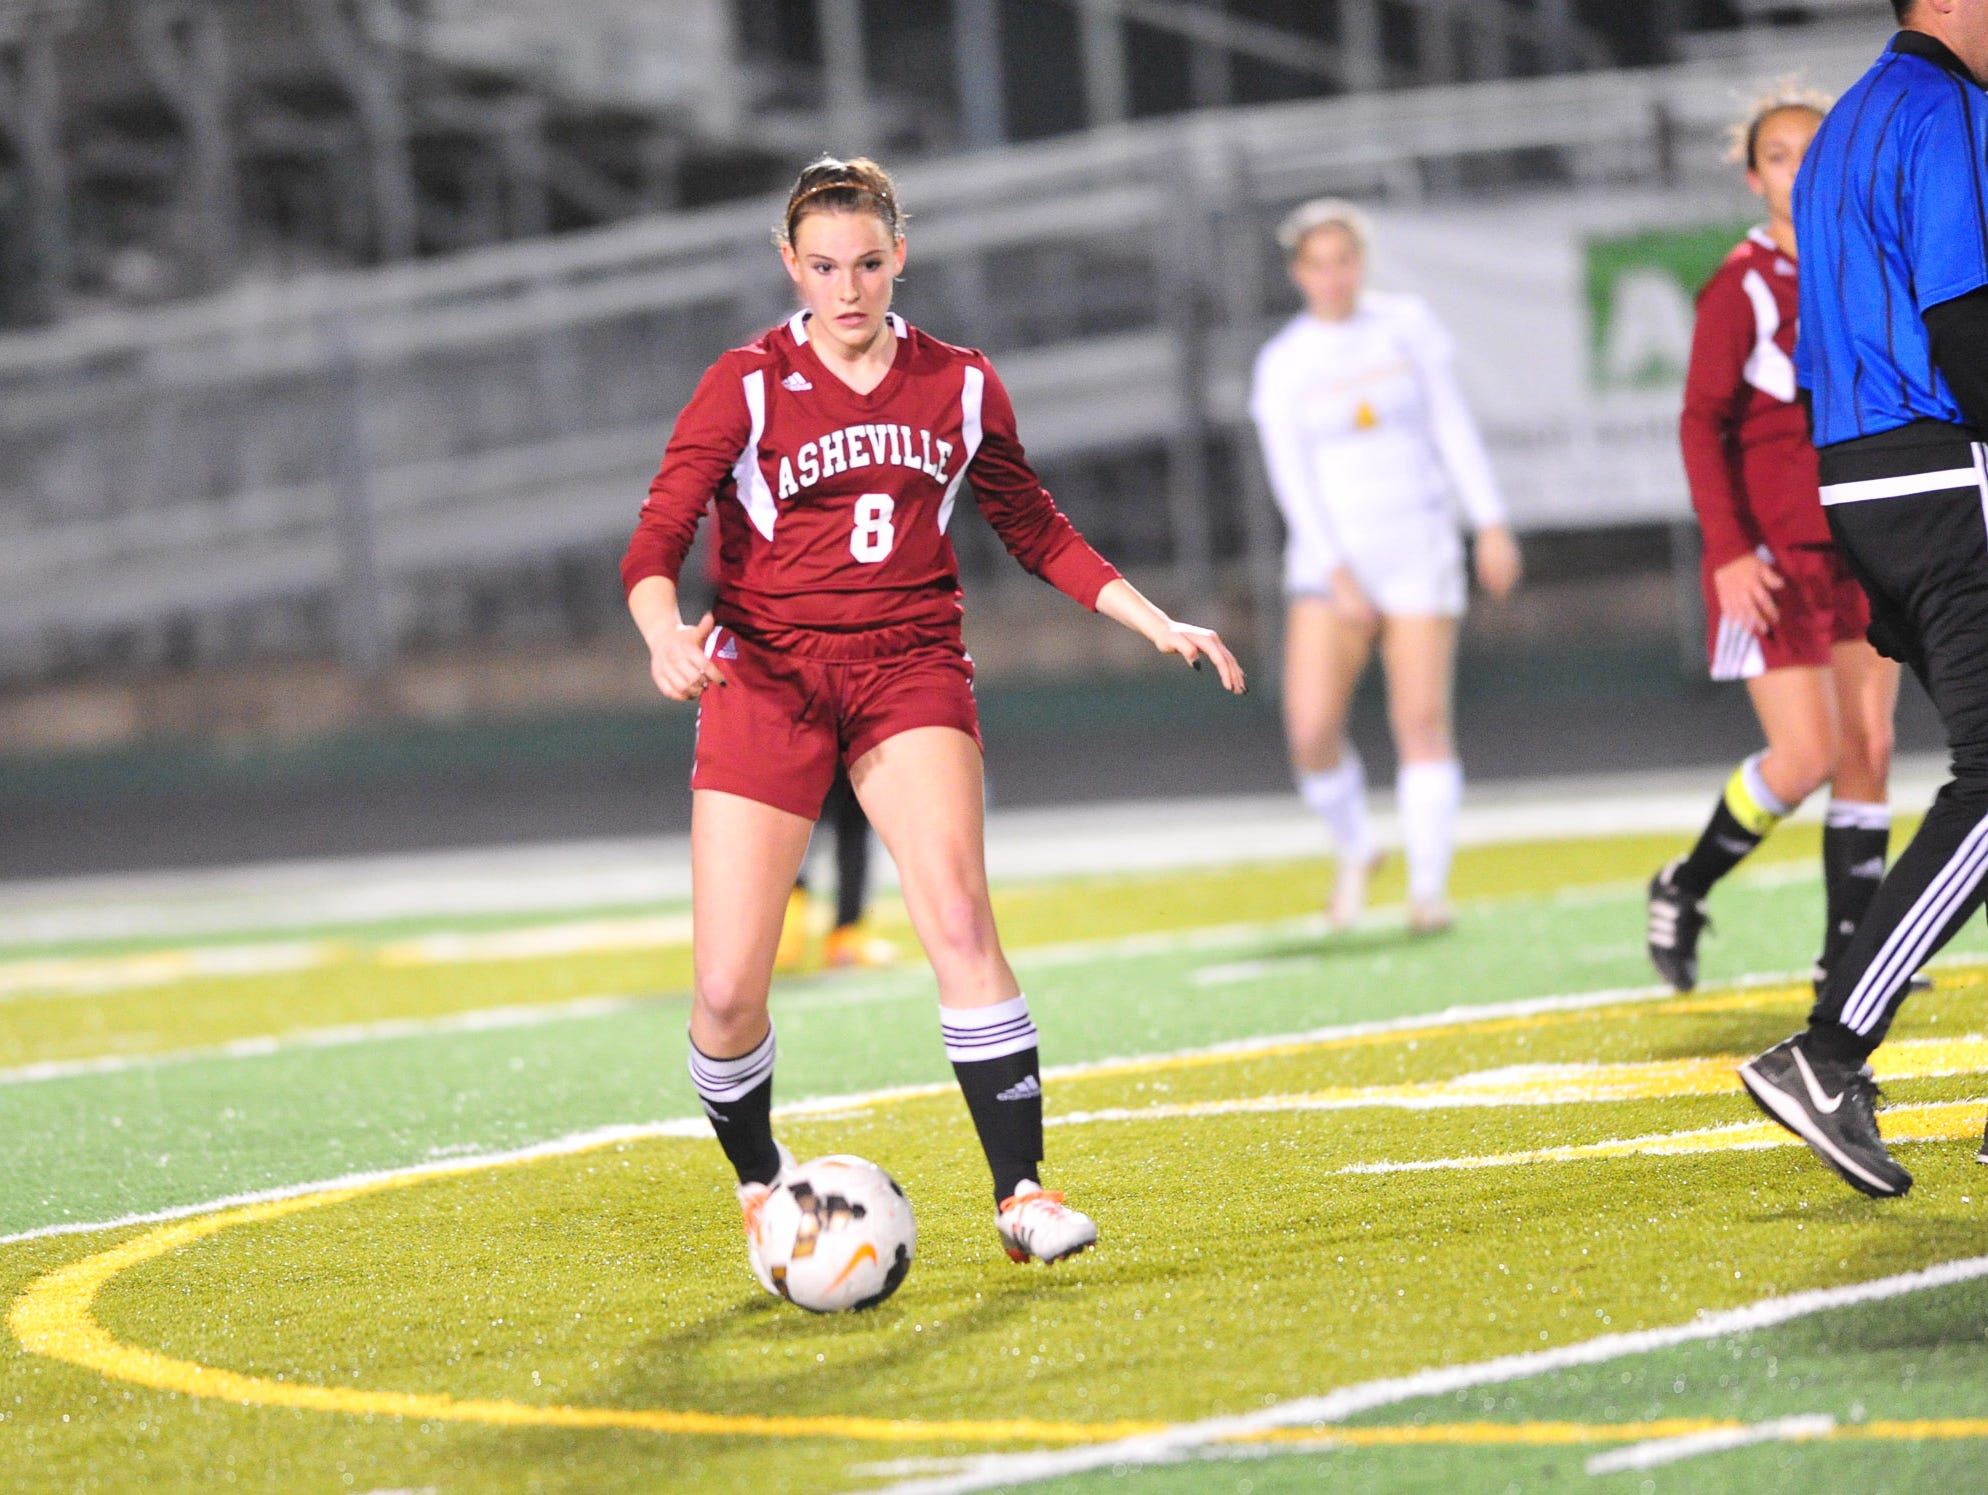 Kenzie McDowell scored the tying goal for Asheville High in Monday's 2-2 game at Reynolds.